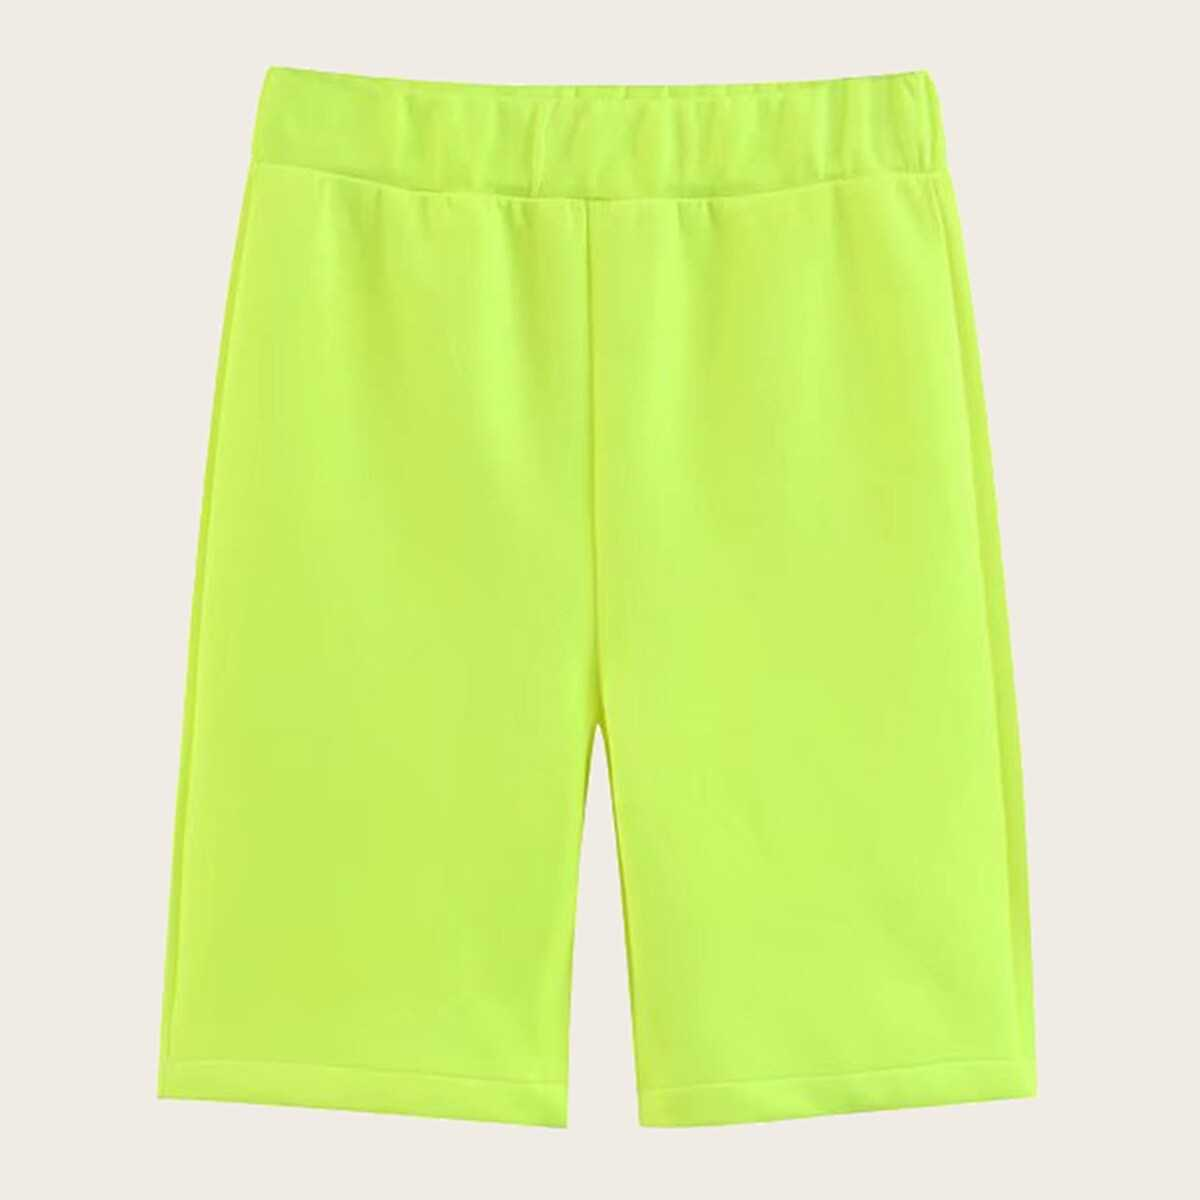 Neon Lime Solid Cycling Shorts - Shein - GOOFASH